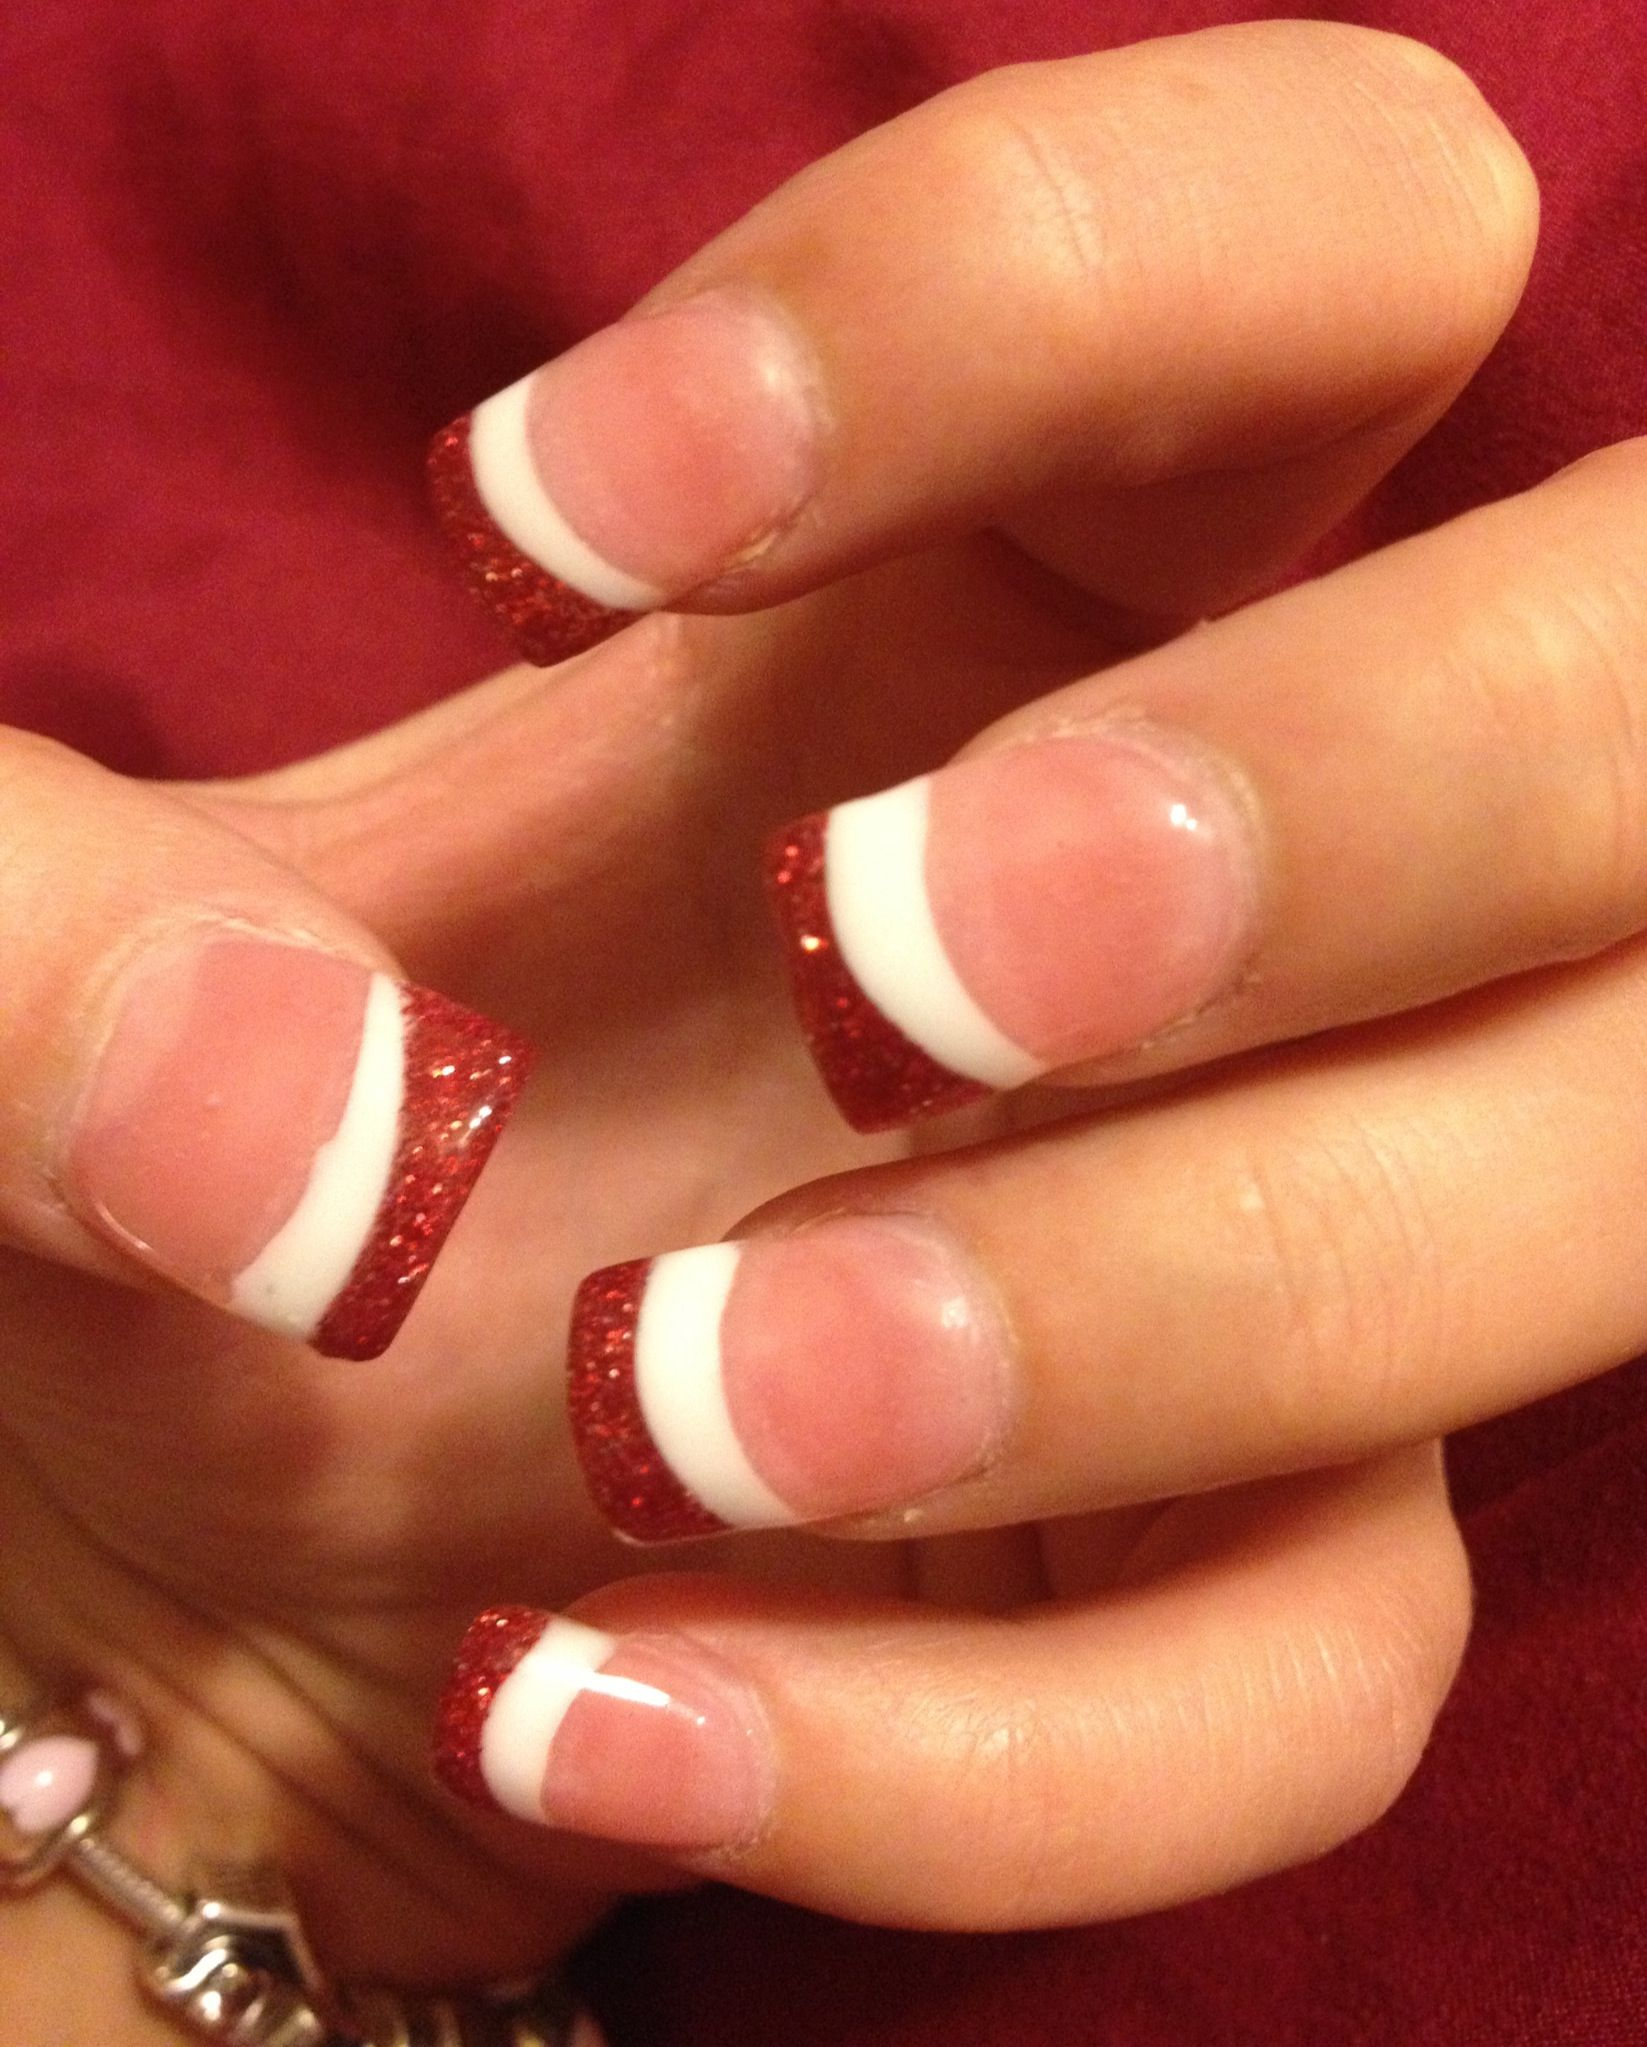 Valentines Day Nails- Gel Nails With White And Glittery